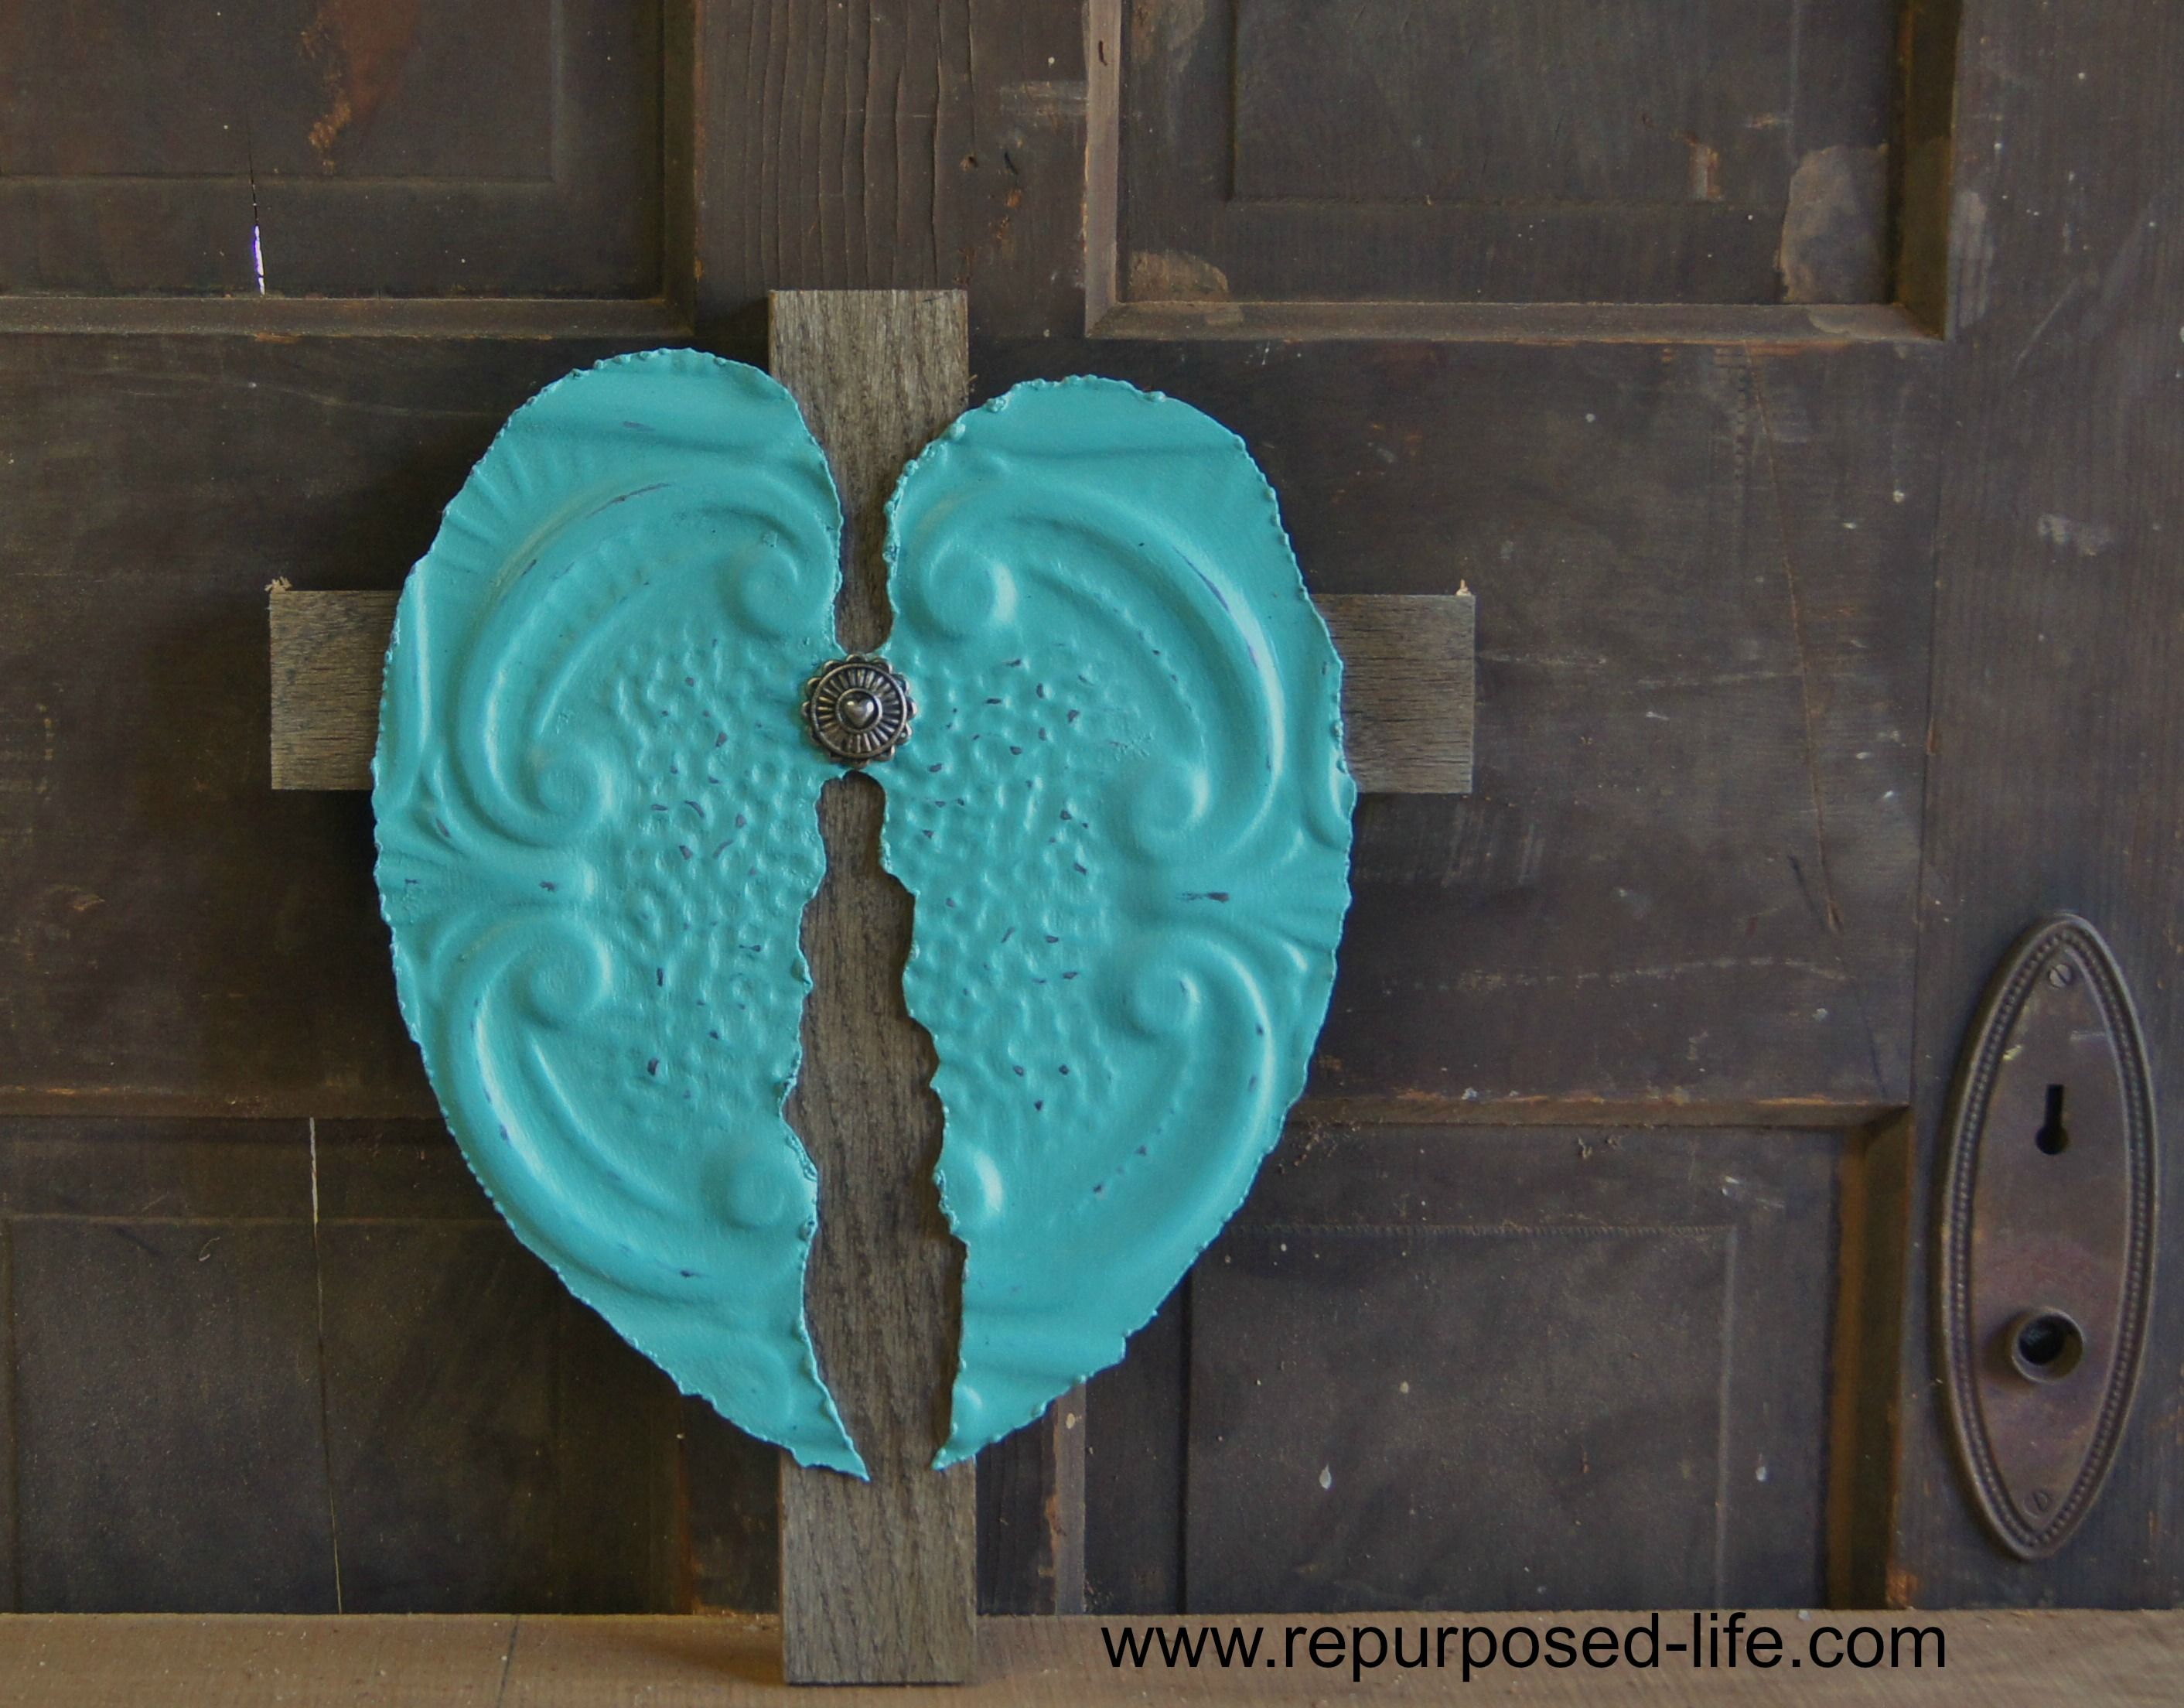 Turquoise angel wingscross made from antique ceiling tile oak turquoise angel wingscross made from antique ceiling tile dailygadgetfo Images